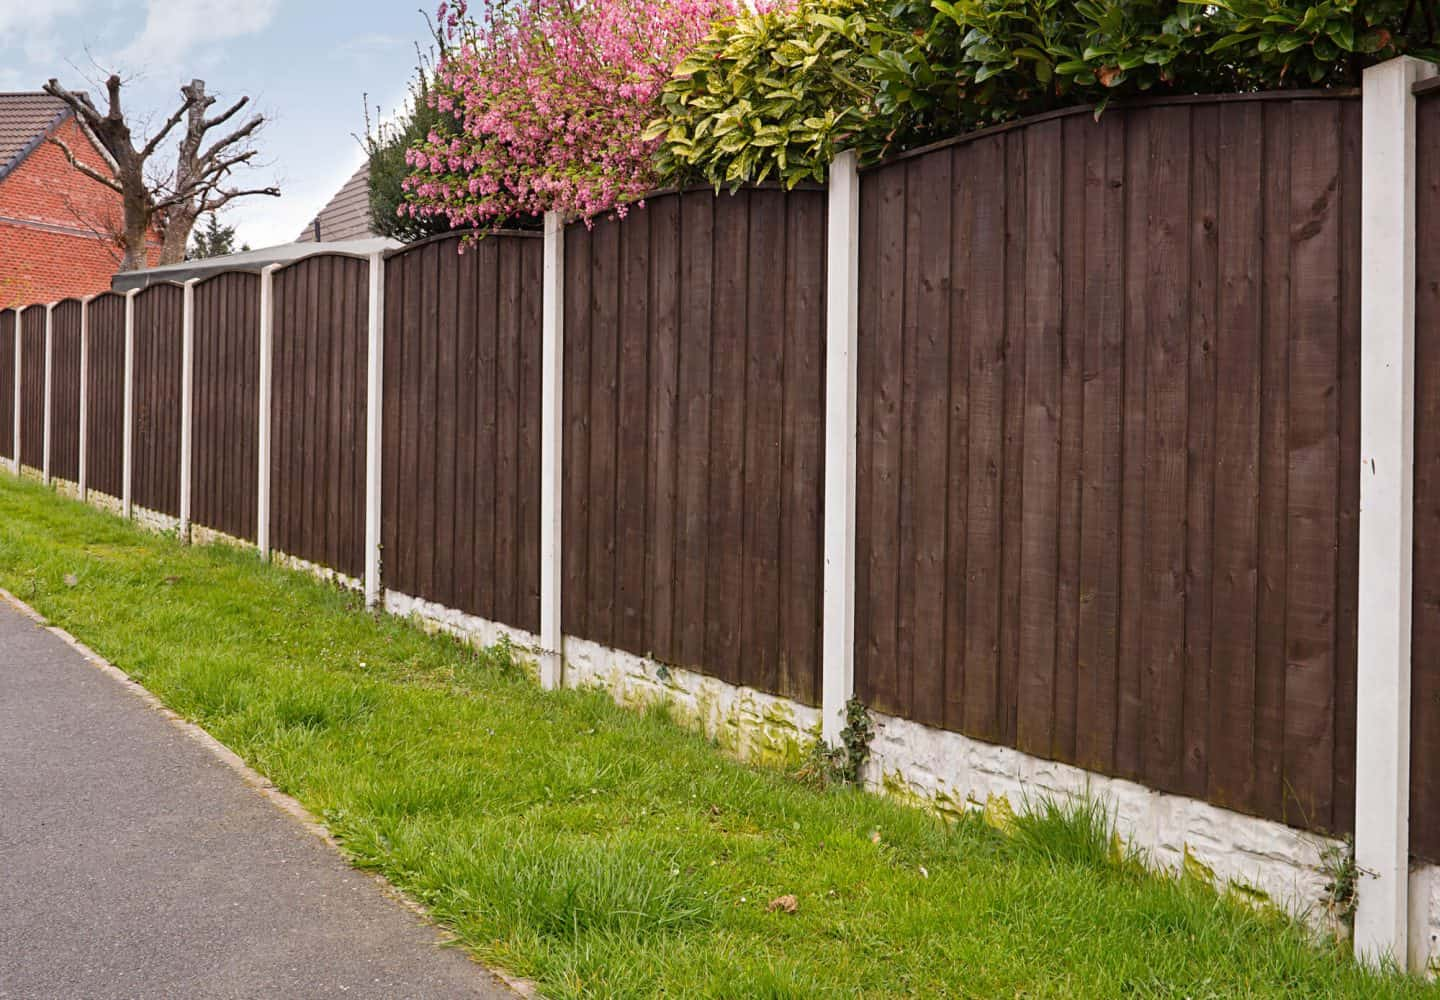 How to Increase the Privacy in Your Home